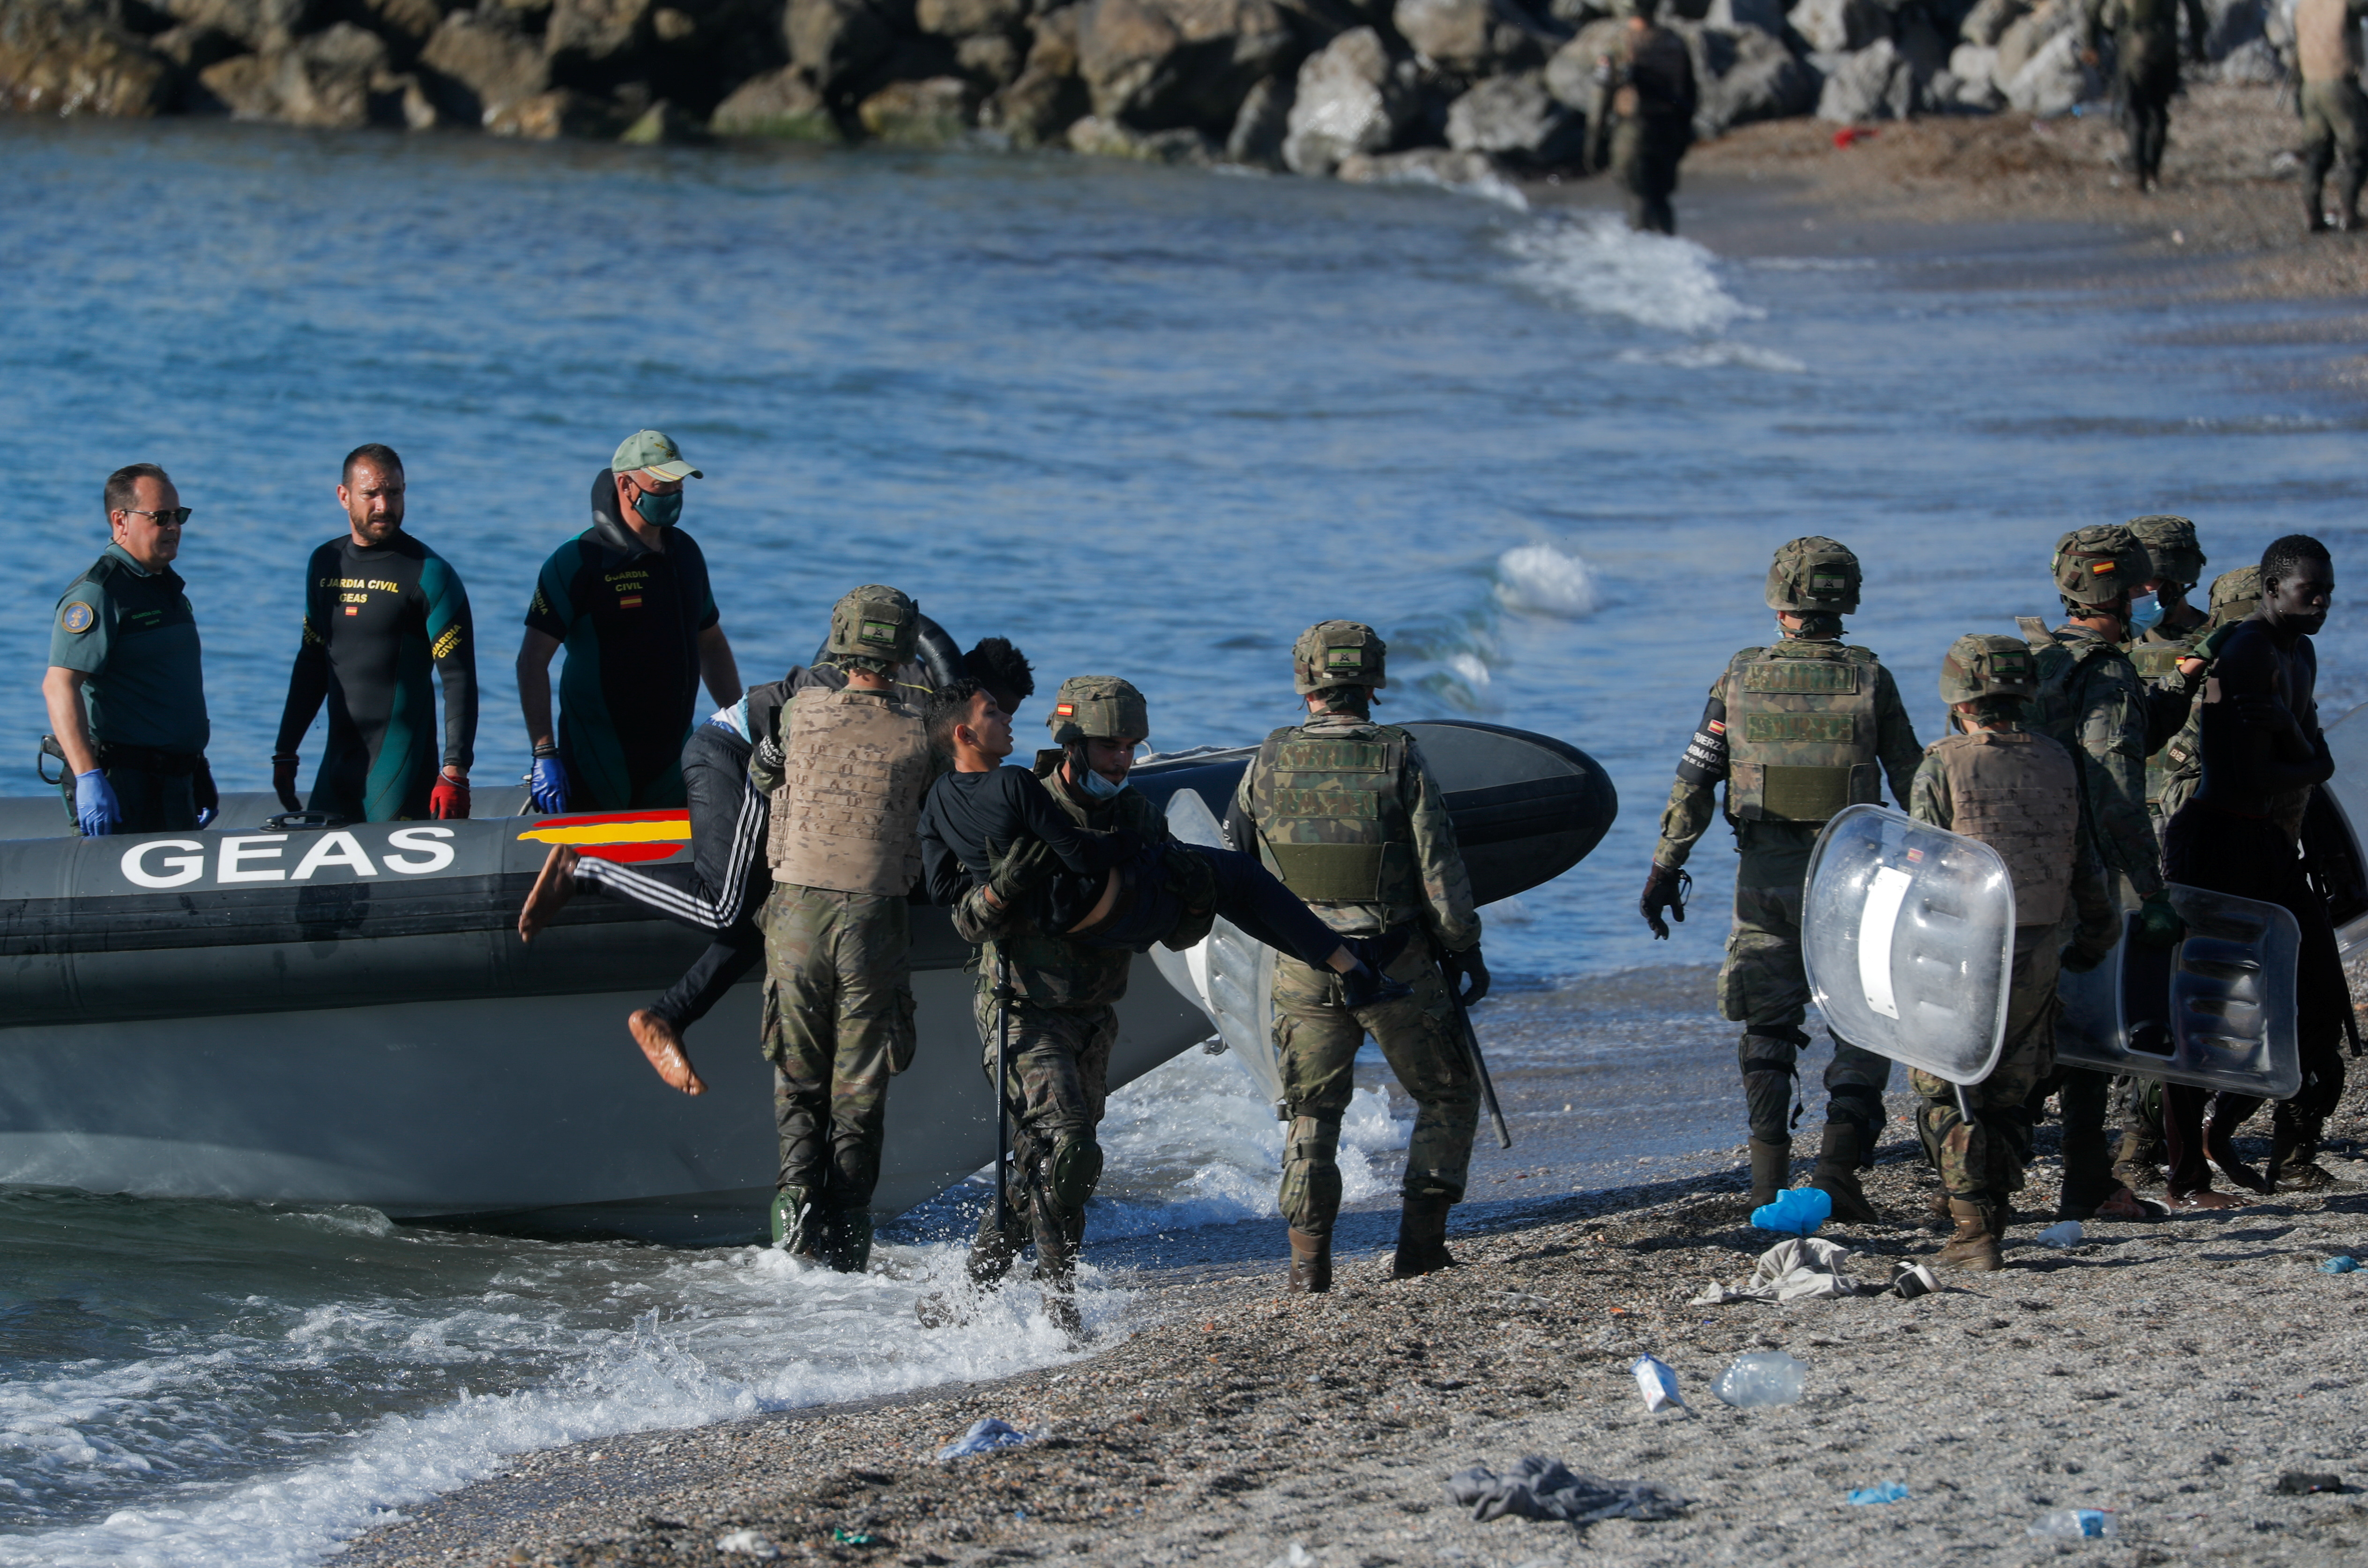 Spanish soldiers help Moroccan citizens at El Tarajal beach, near the fence between the Spanish-Moroccan border, after thousands of migrants swam across the border, in Ceuta, Spain, May 19, 2021. REUTERS/Jon Nazca